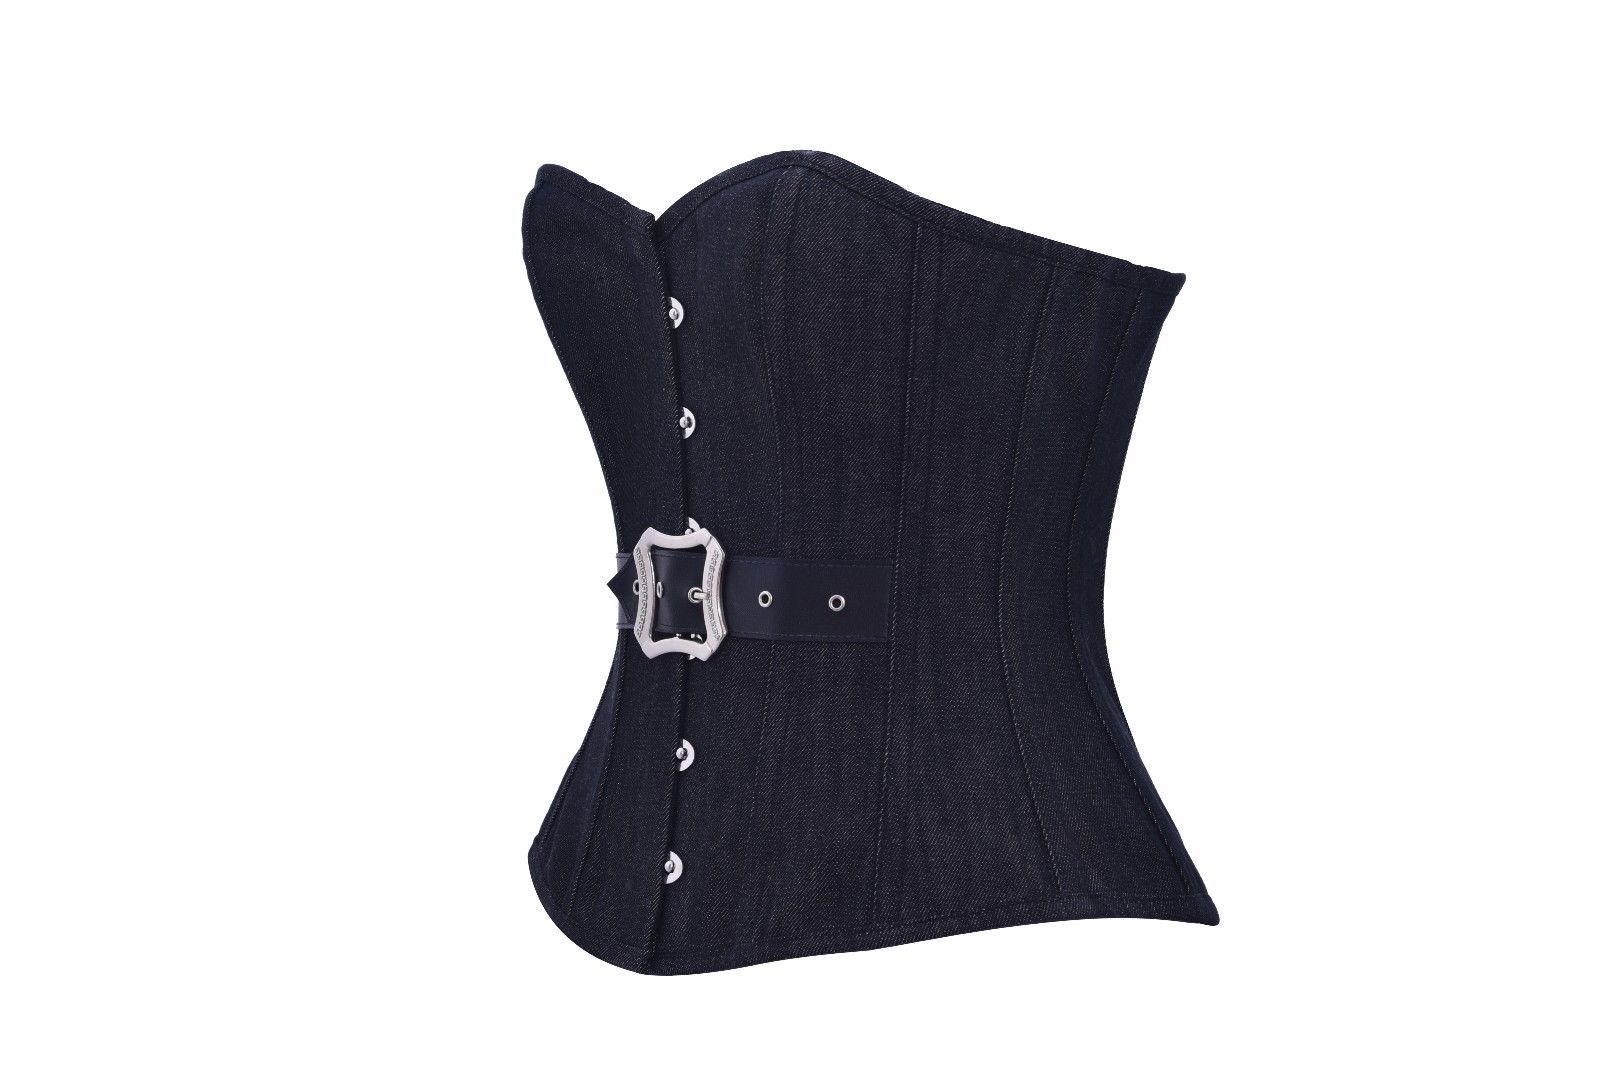 Black Denim Leather Belt Gothic Steampunk Bustier Waist Training Overbust Corset